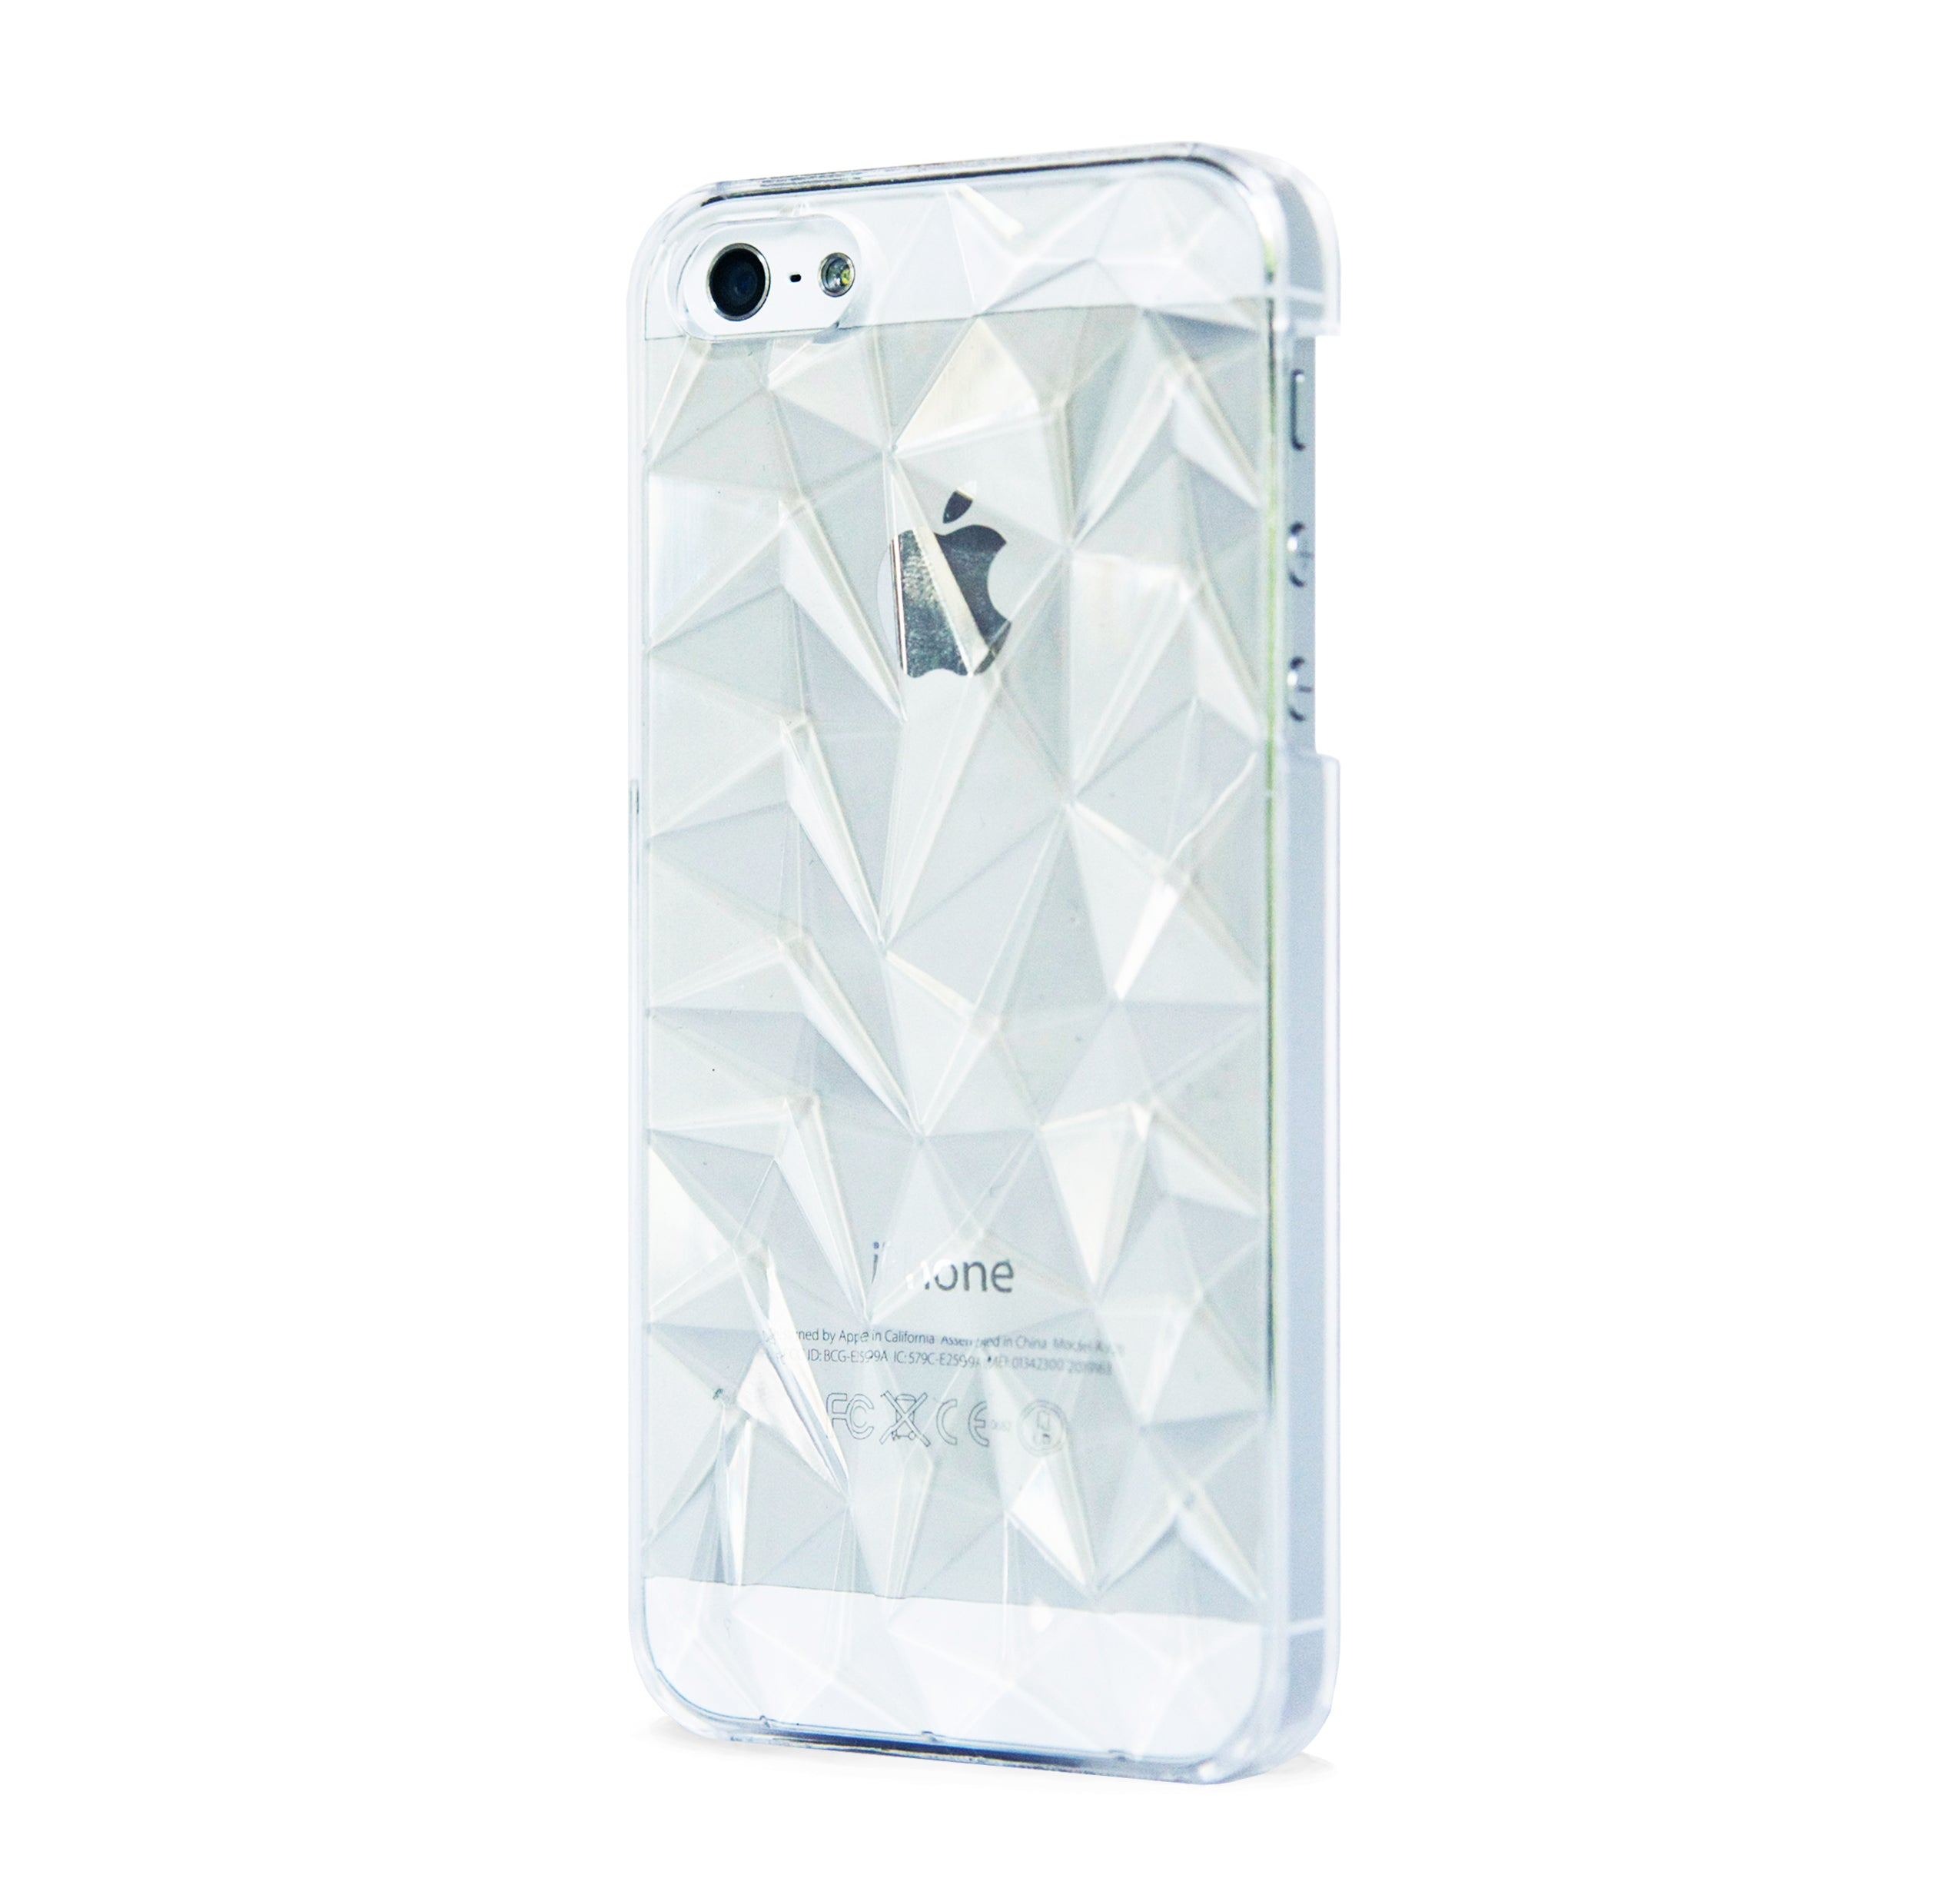 IPhone 5/5s MULTI FACETED CASE CLEAR BlissfulCASENY - 2550x2452 - jpeg